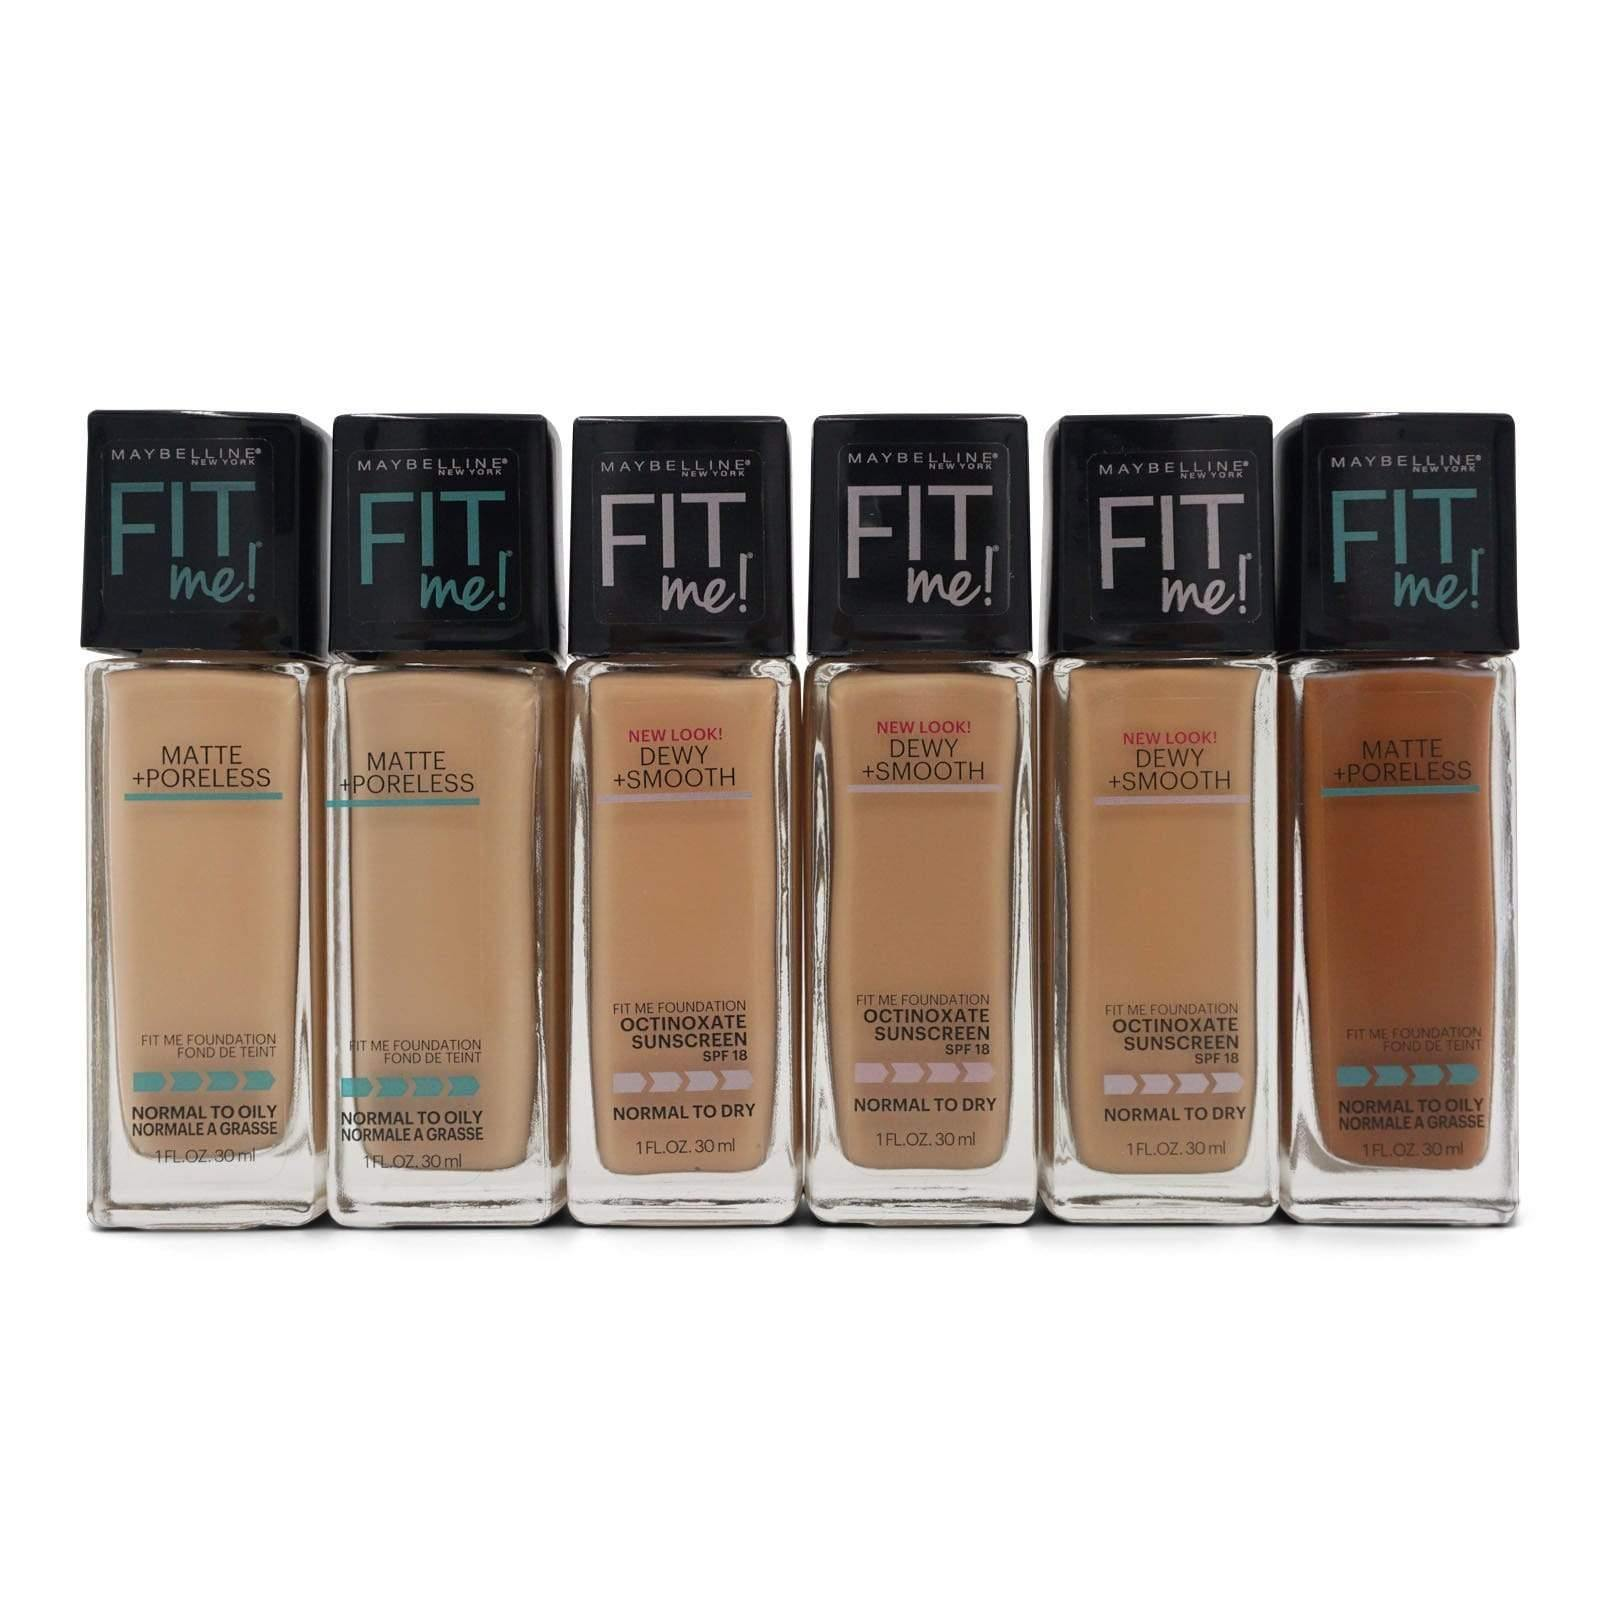 MAYBELLINE | FitMe! Foundation Mixed Makeup Lot (24 Units)